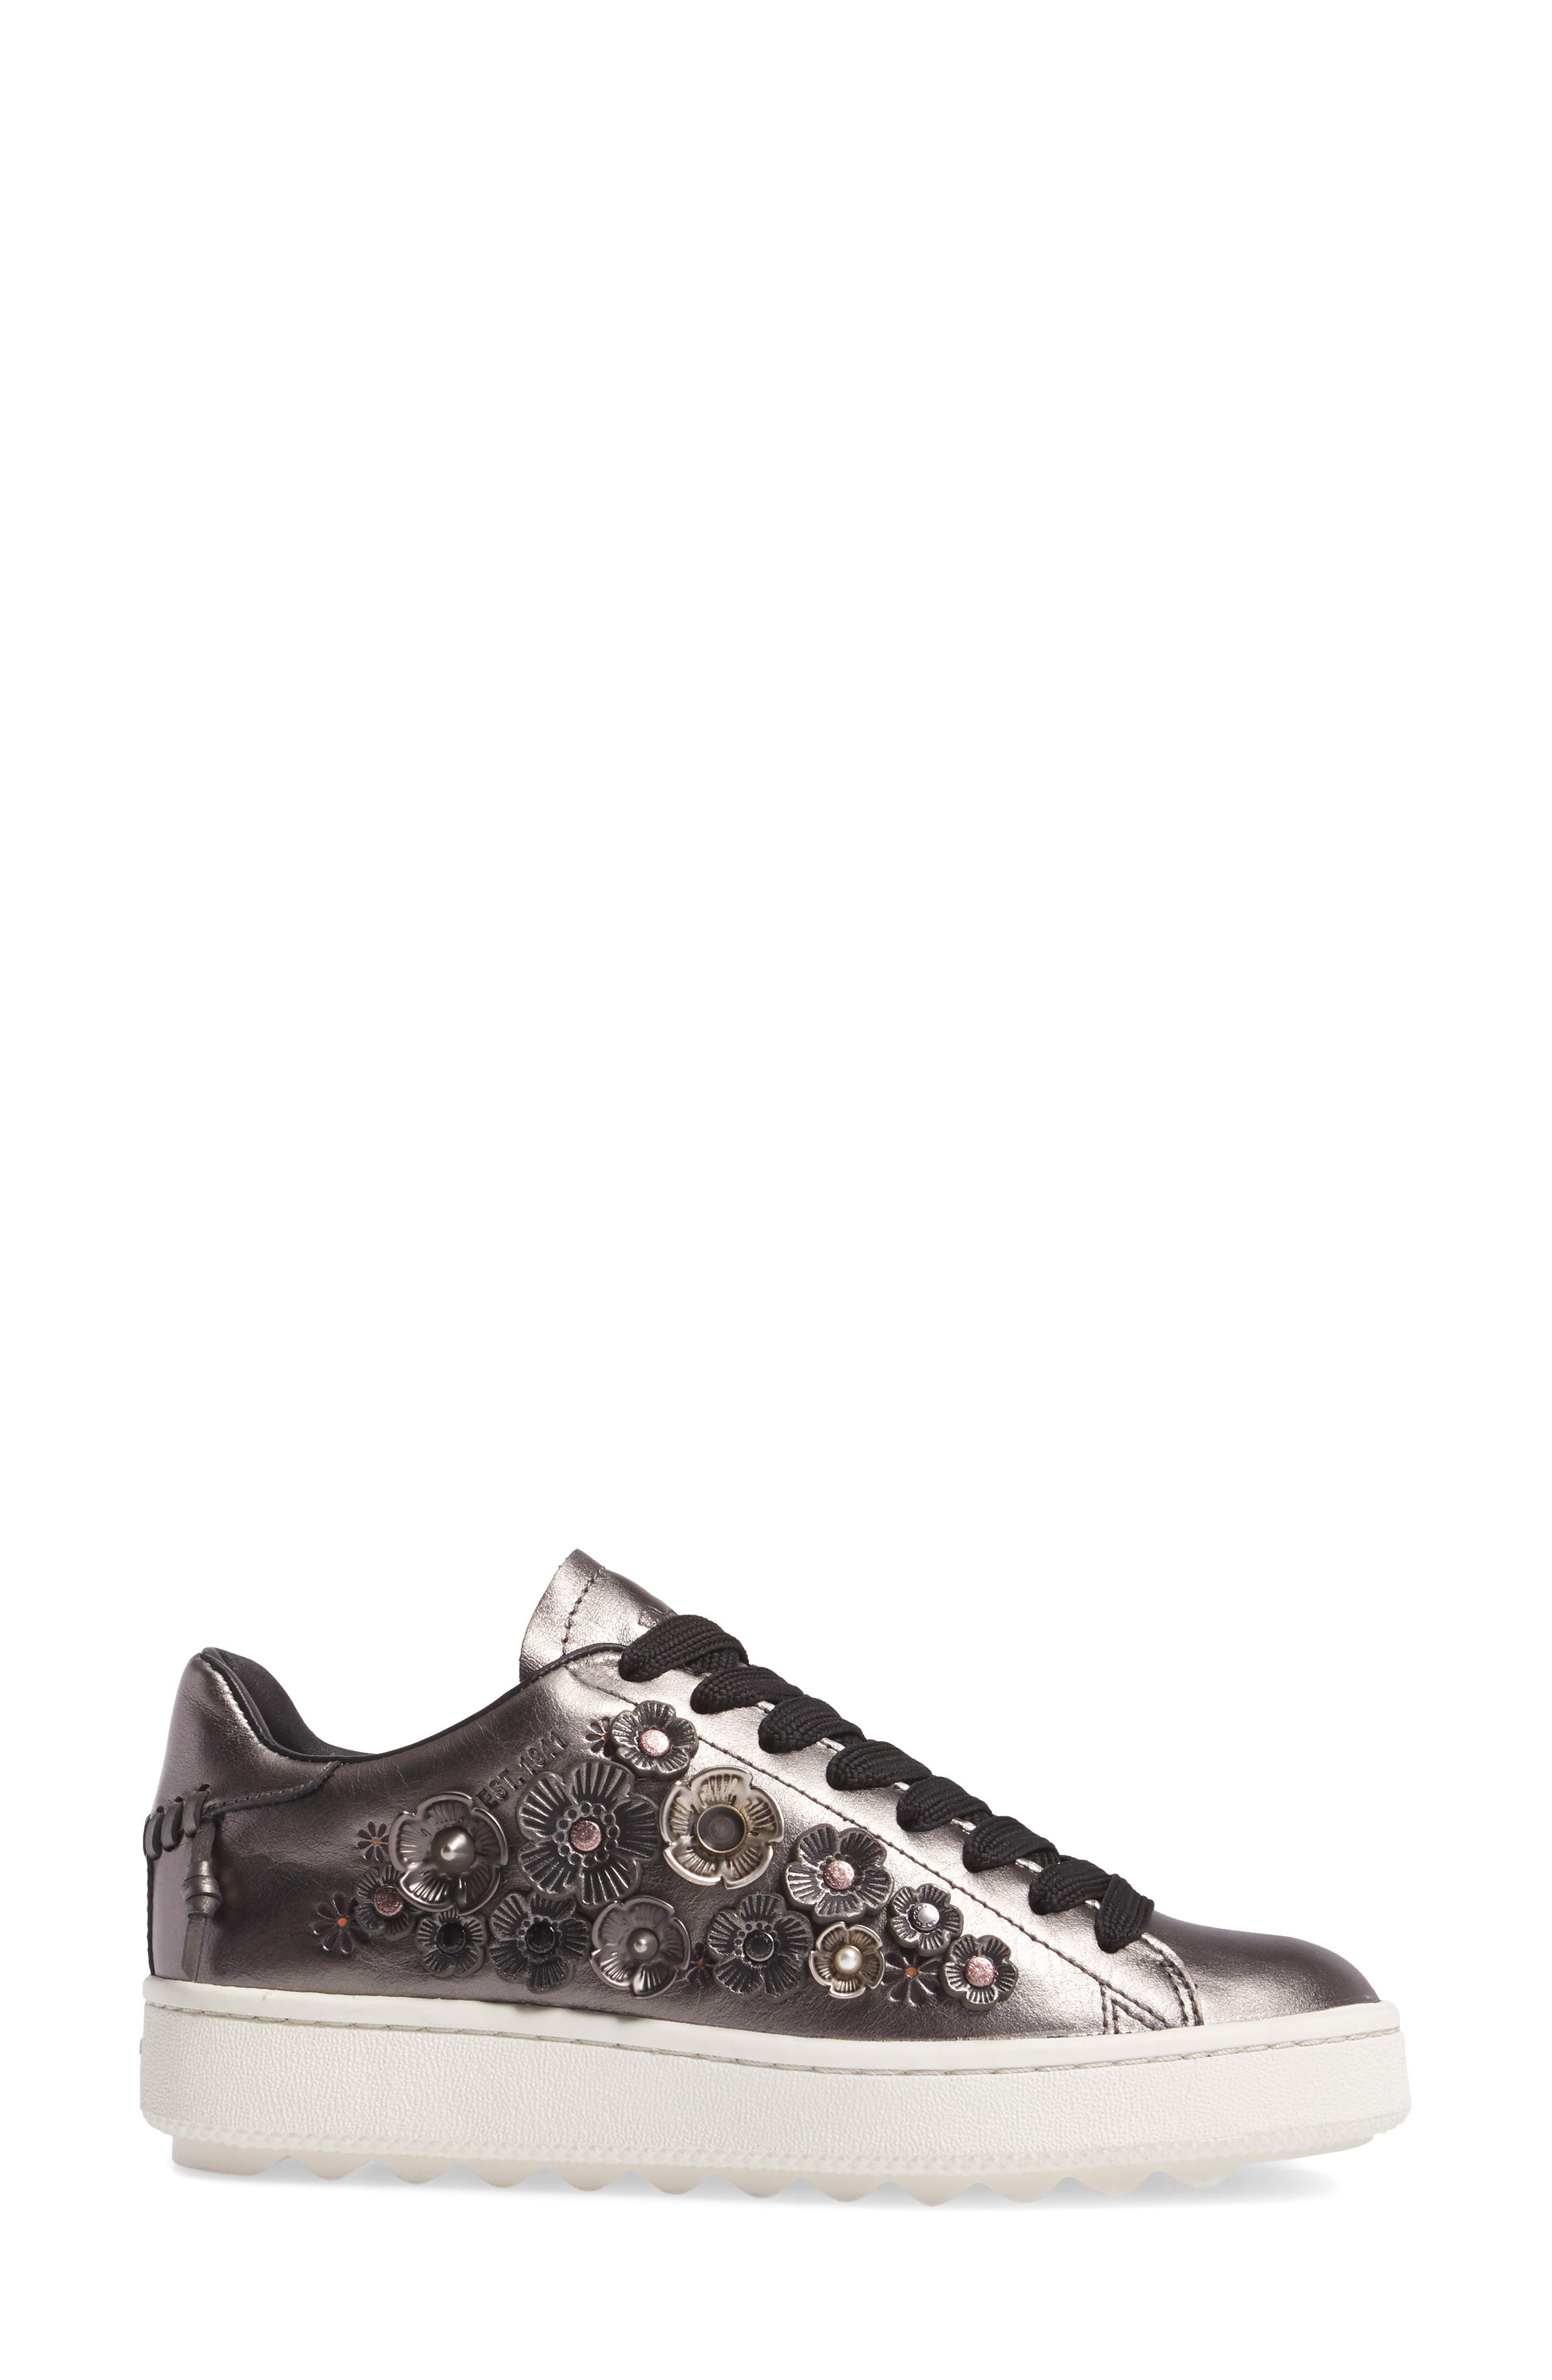 Tea Rose Metallic Sneaker,                             Alternate thumbnail 3, color,                             Gunmetal Leather